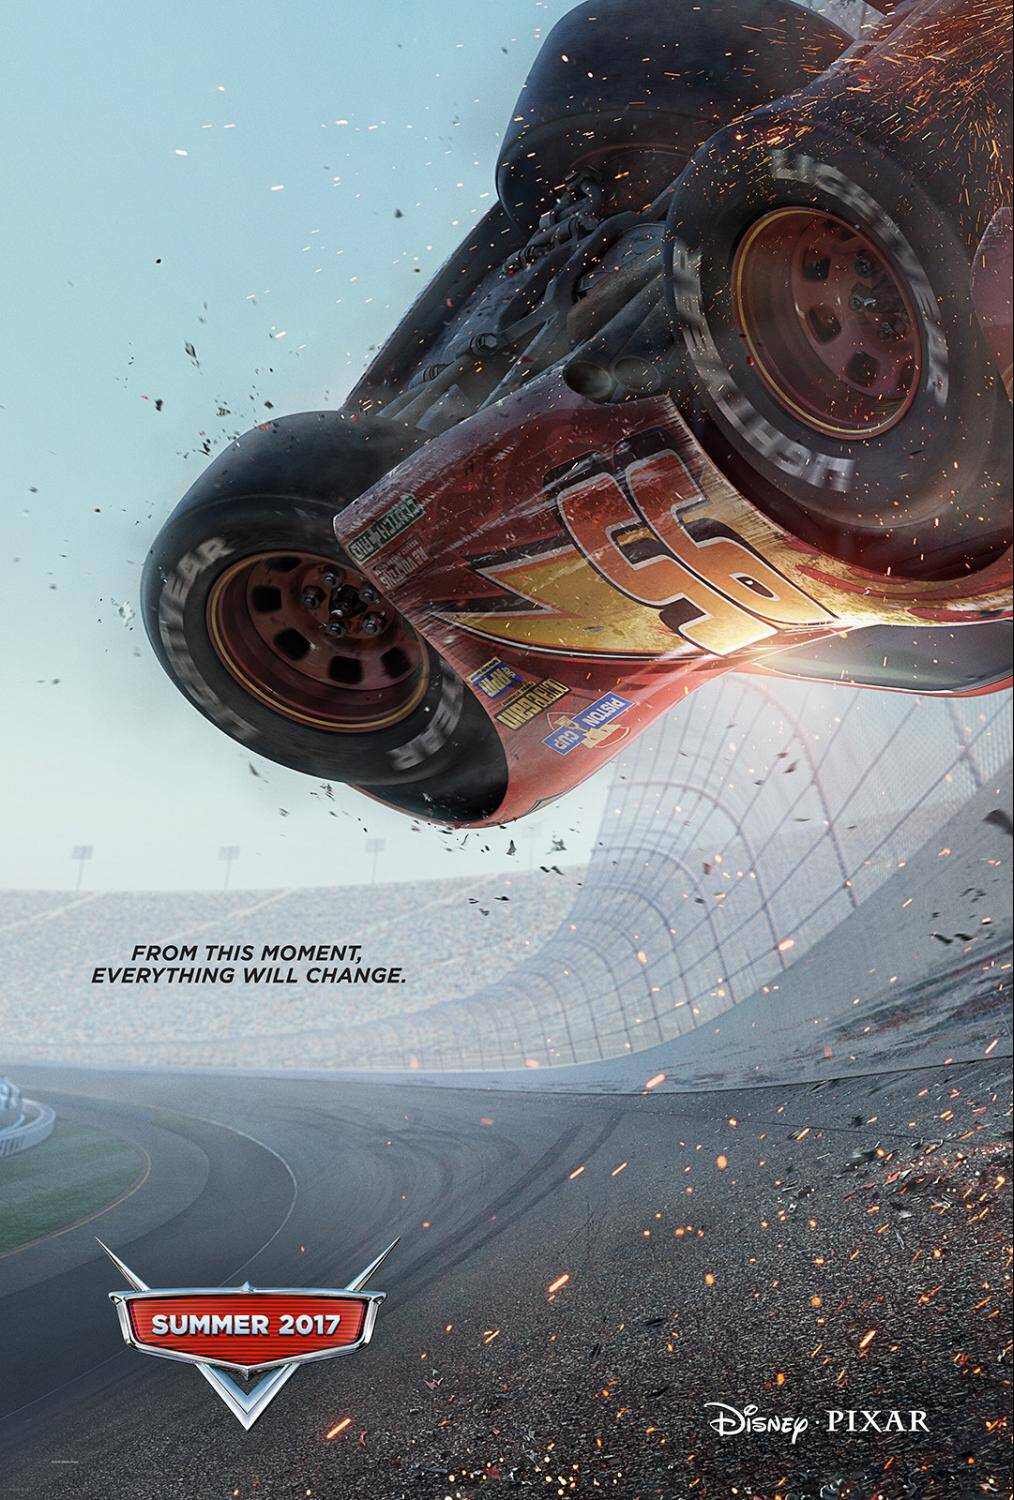 Cars 3 is in theaters this summer, June 16, 2017! Check out this extended sneak peek and meet the brand new characters! Vroom vroom!